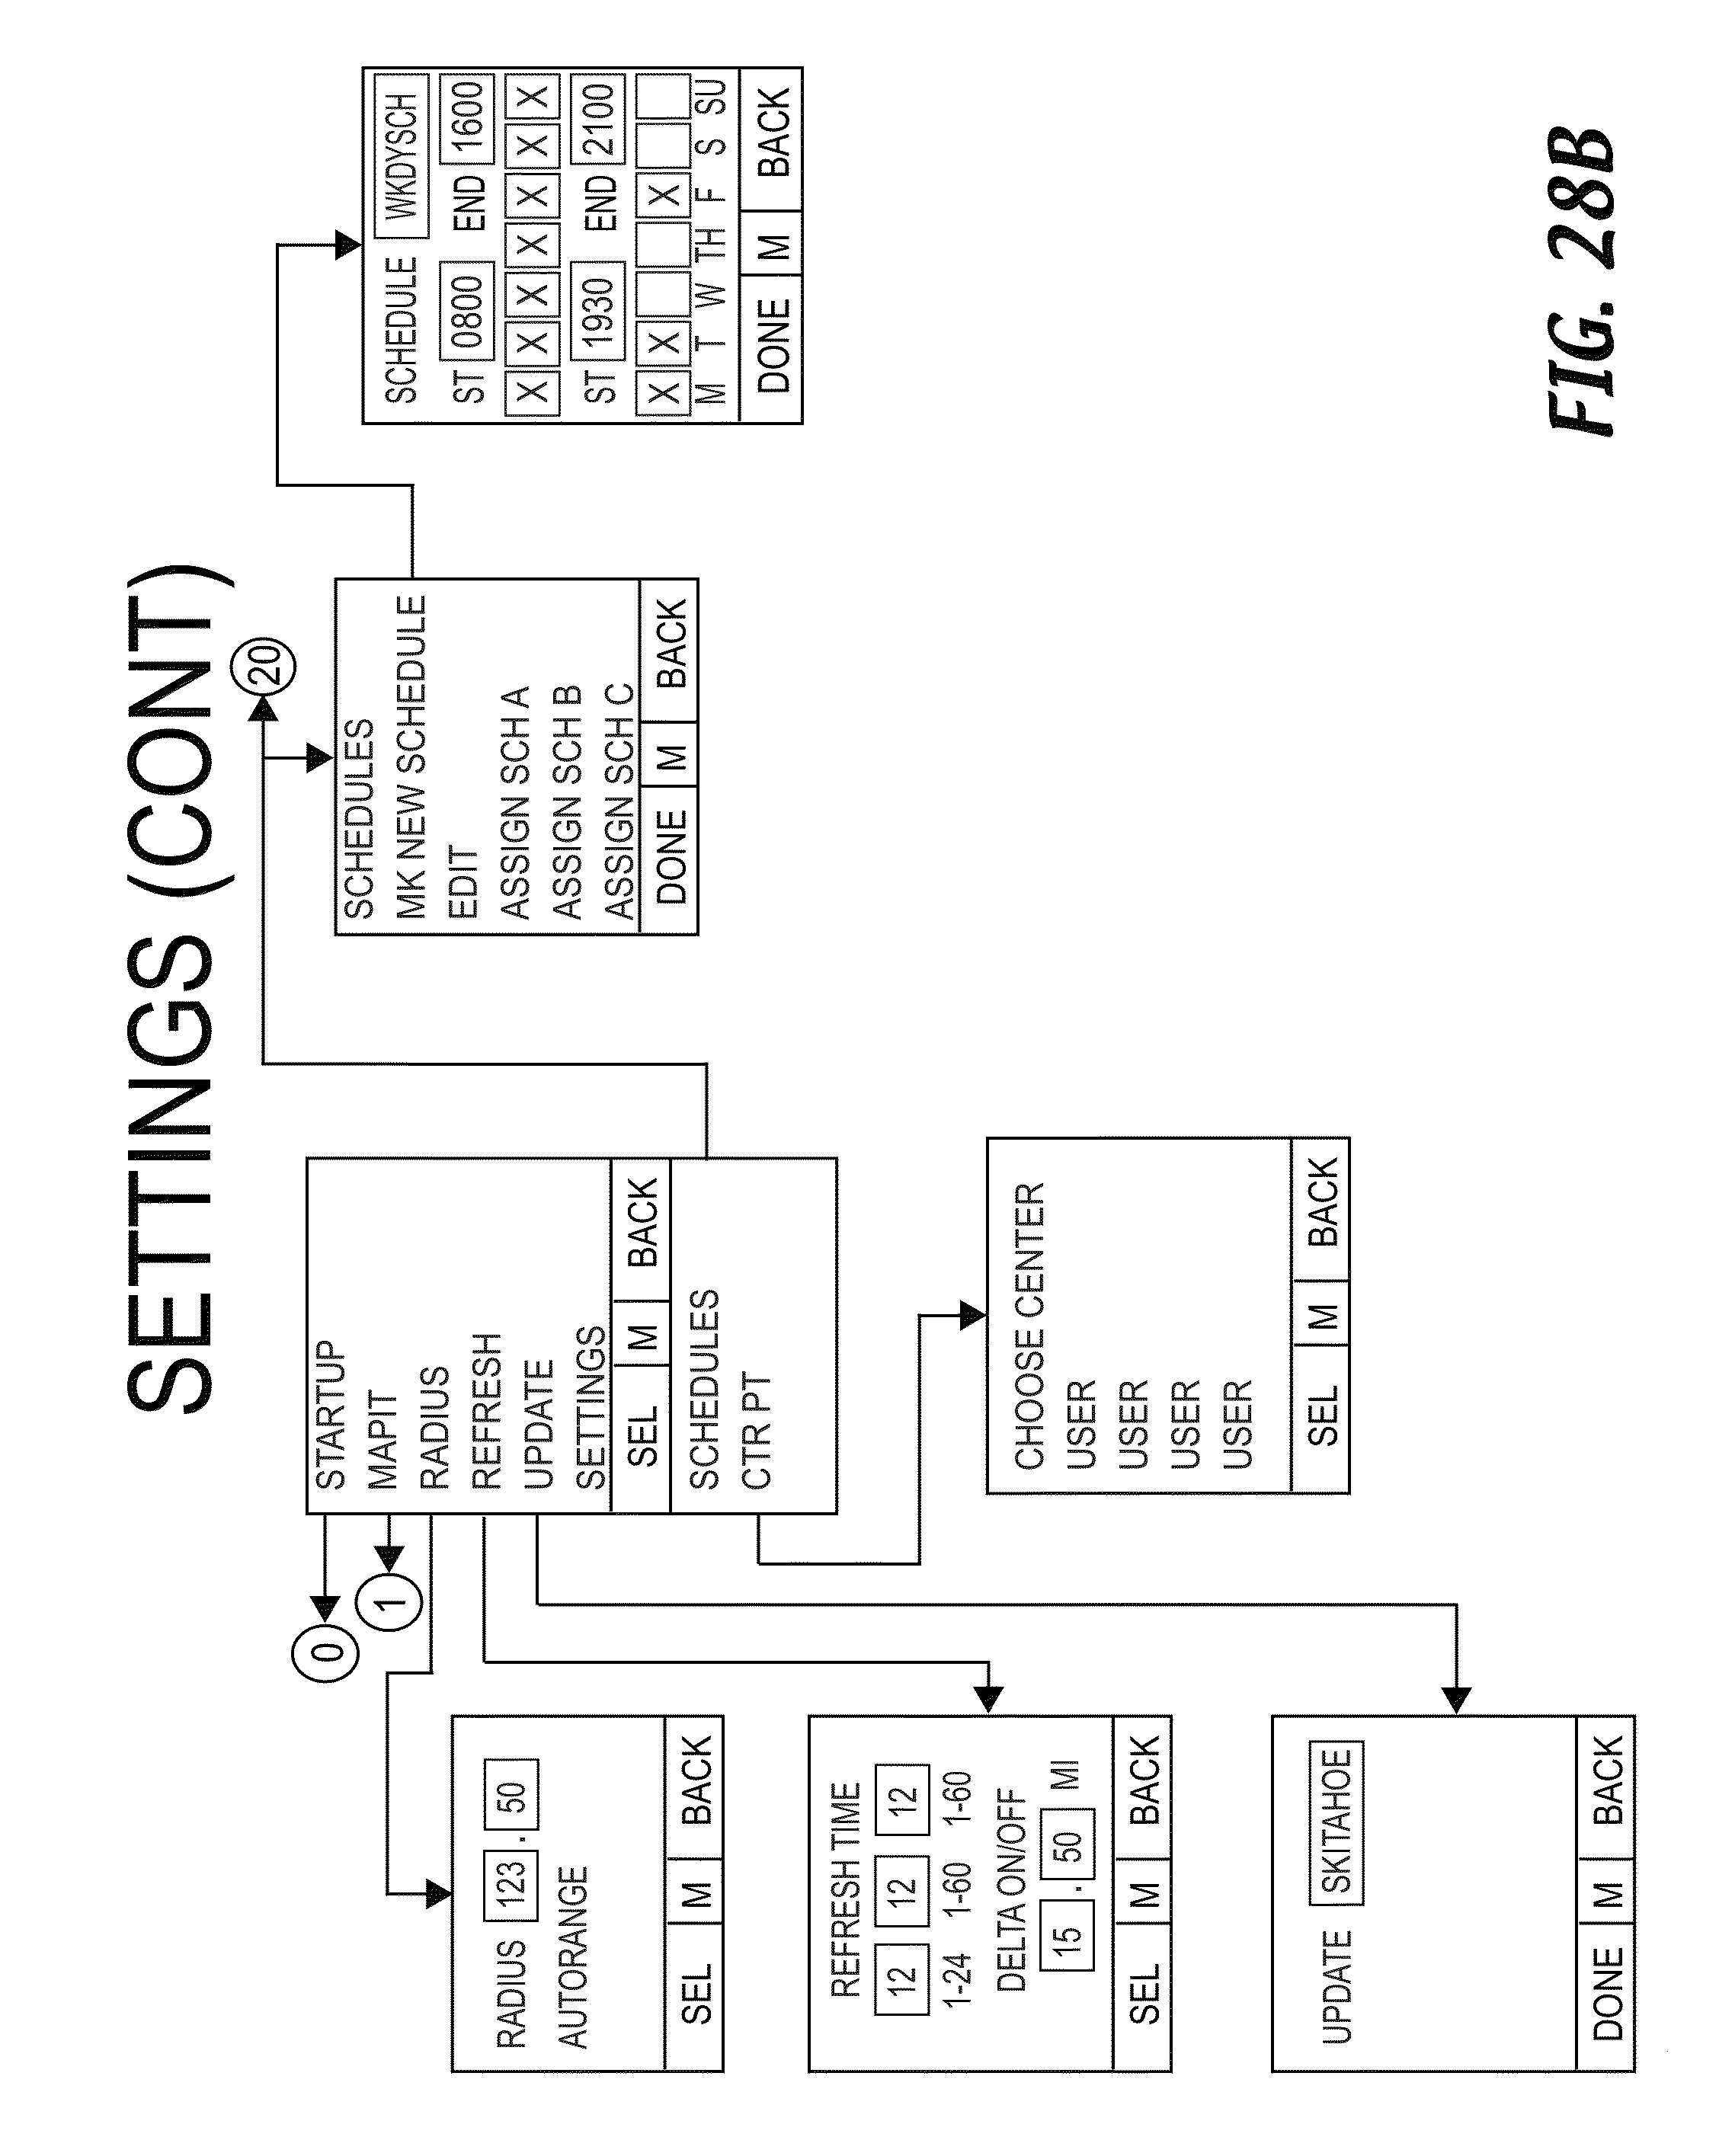 Us9253616b1 Apparatus And Method For Obtaining Content On A. Us9253616b1 Apparatus And Method For Obtaining Content On A Cellular Wireless Device Based Proximity Patents. Wiring. Eaton Dom 2100 Motor Starter Wiring Diagram At Scoala.co